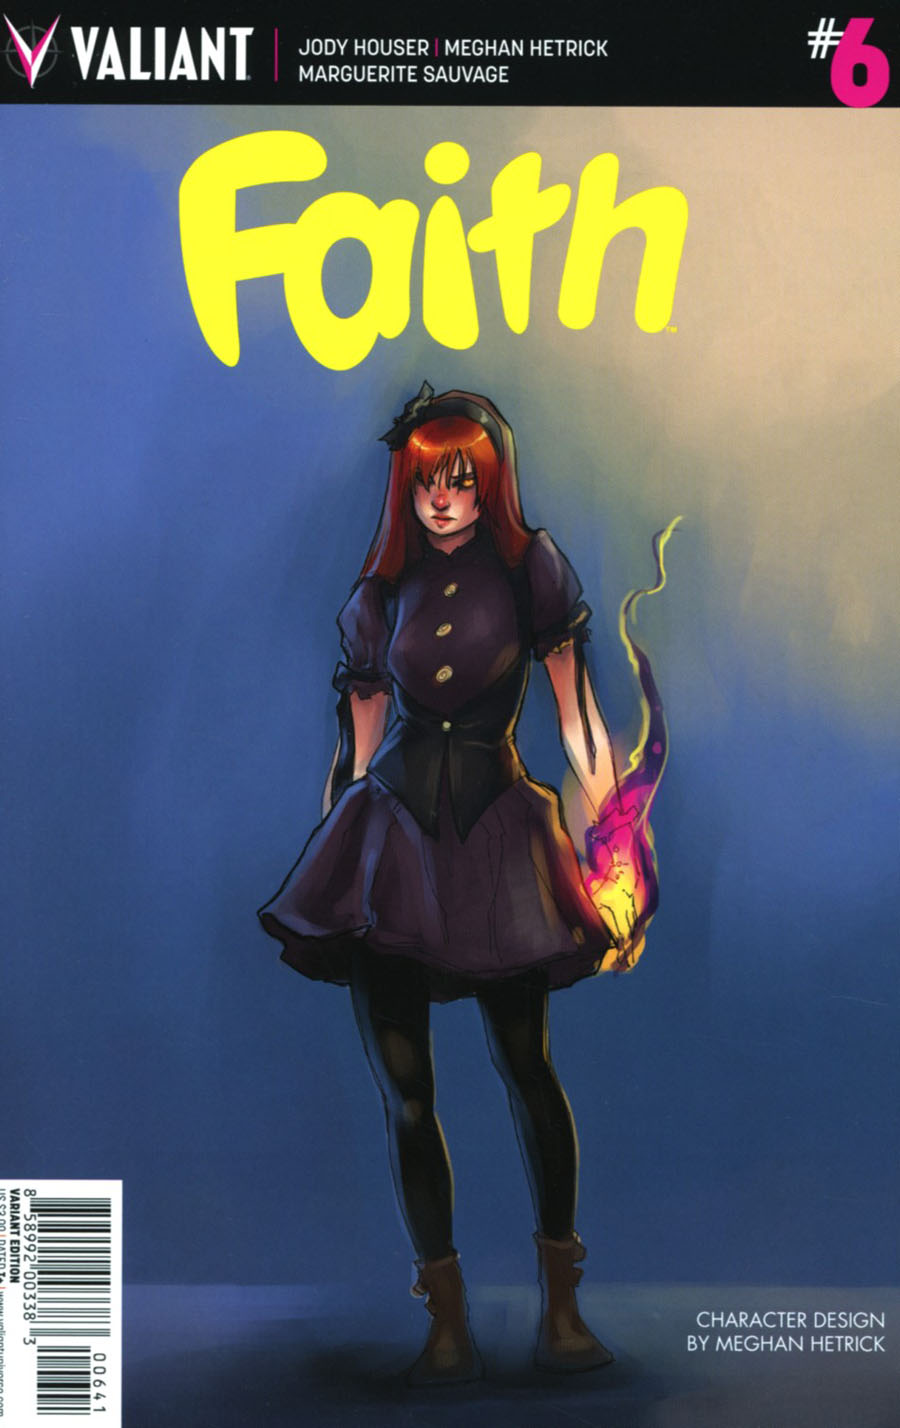 Faith (Valiant Entertainment) Vol 2 #6 Cover D Incentive Meghan Hetrick Character Design Variant Cover